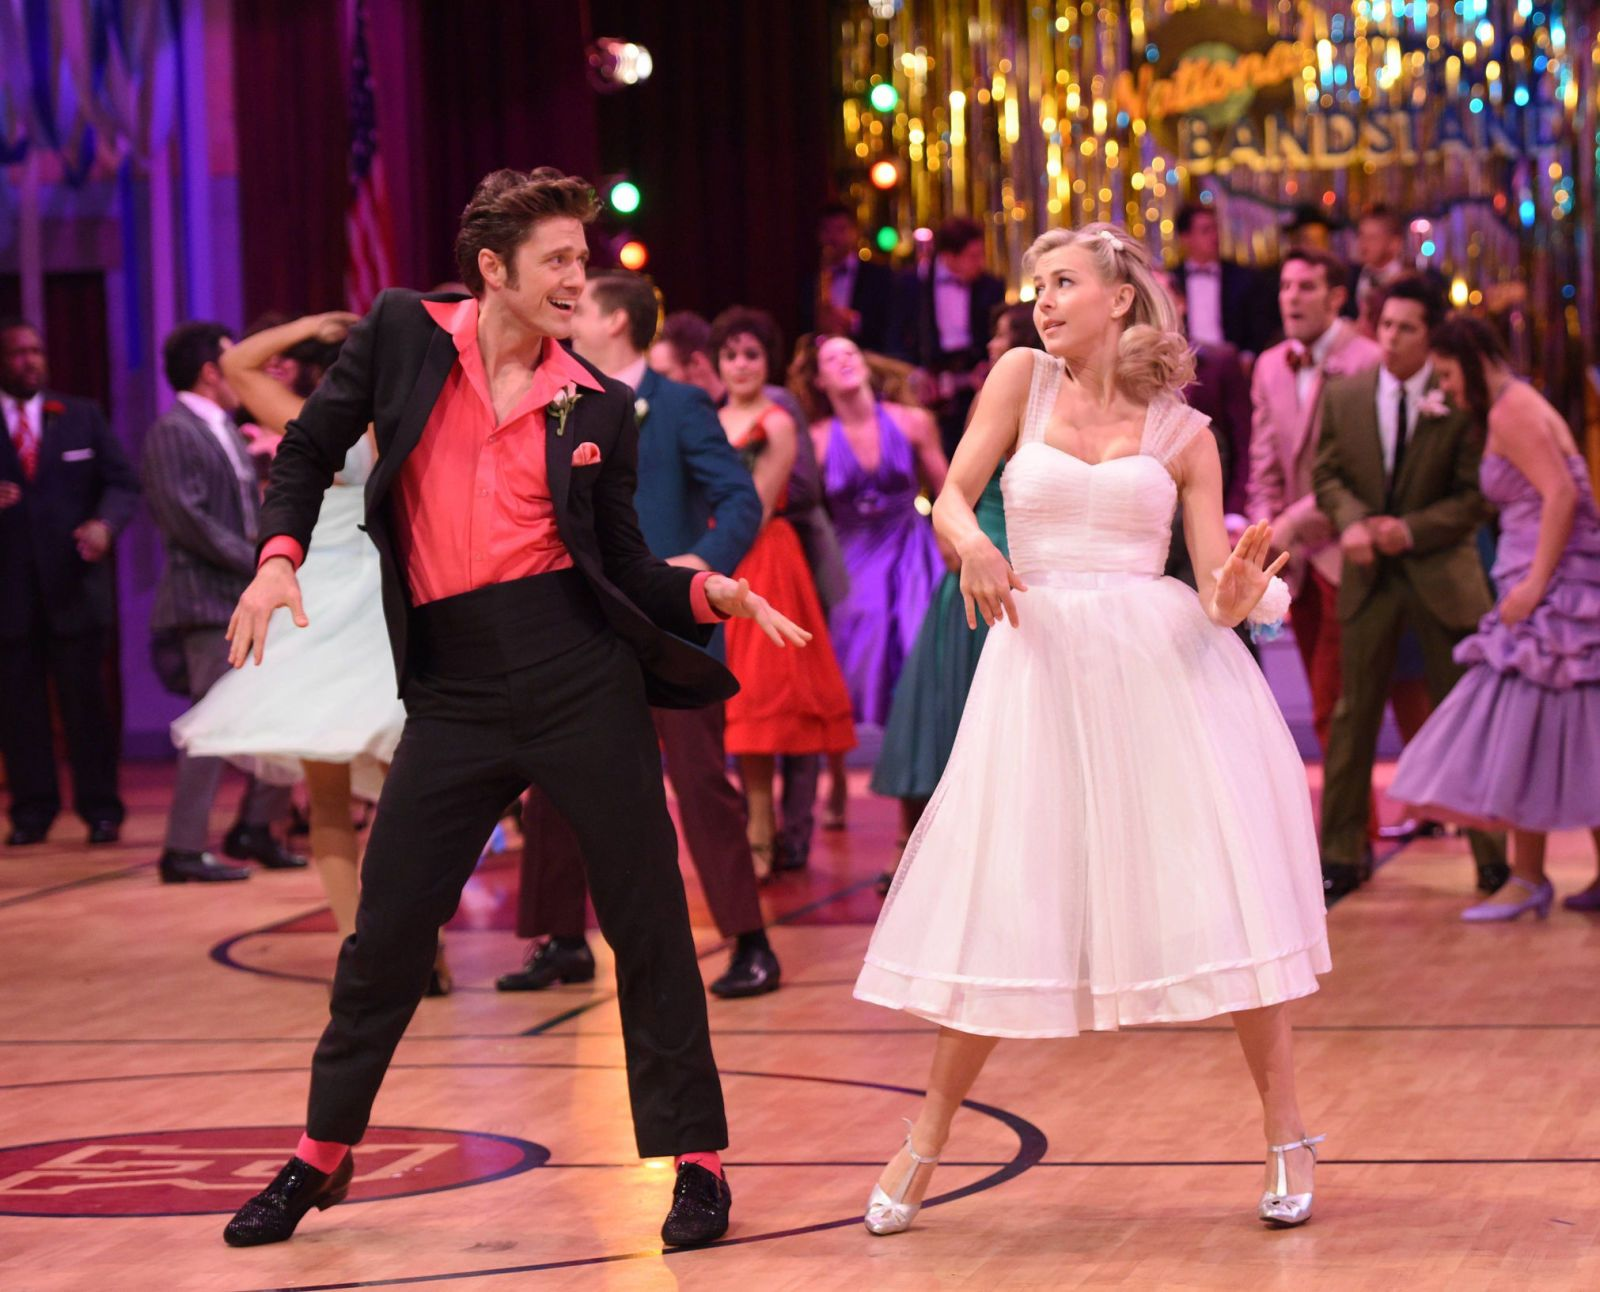 Sexual innuendos in grease